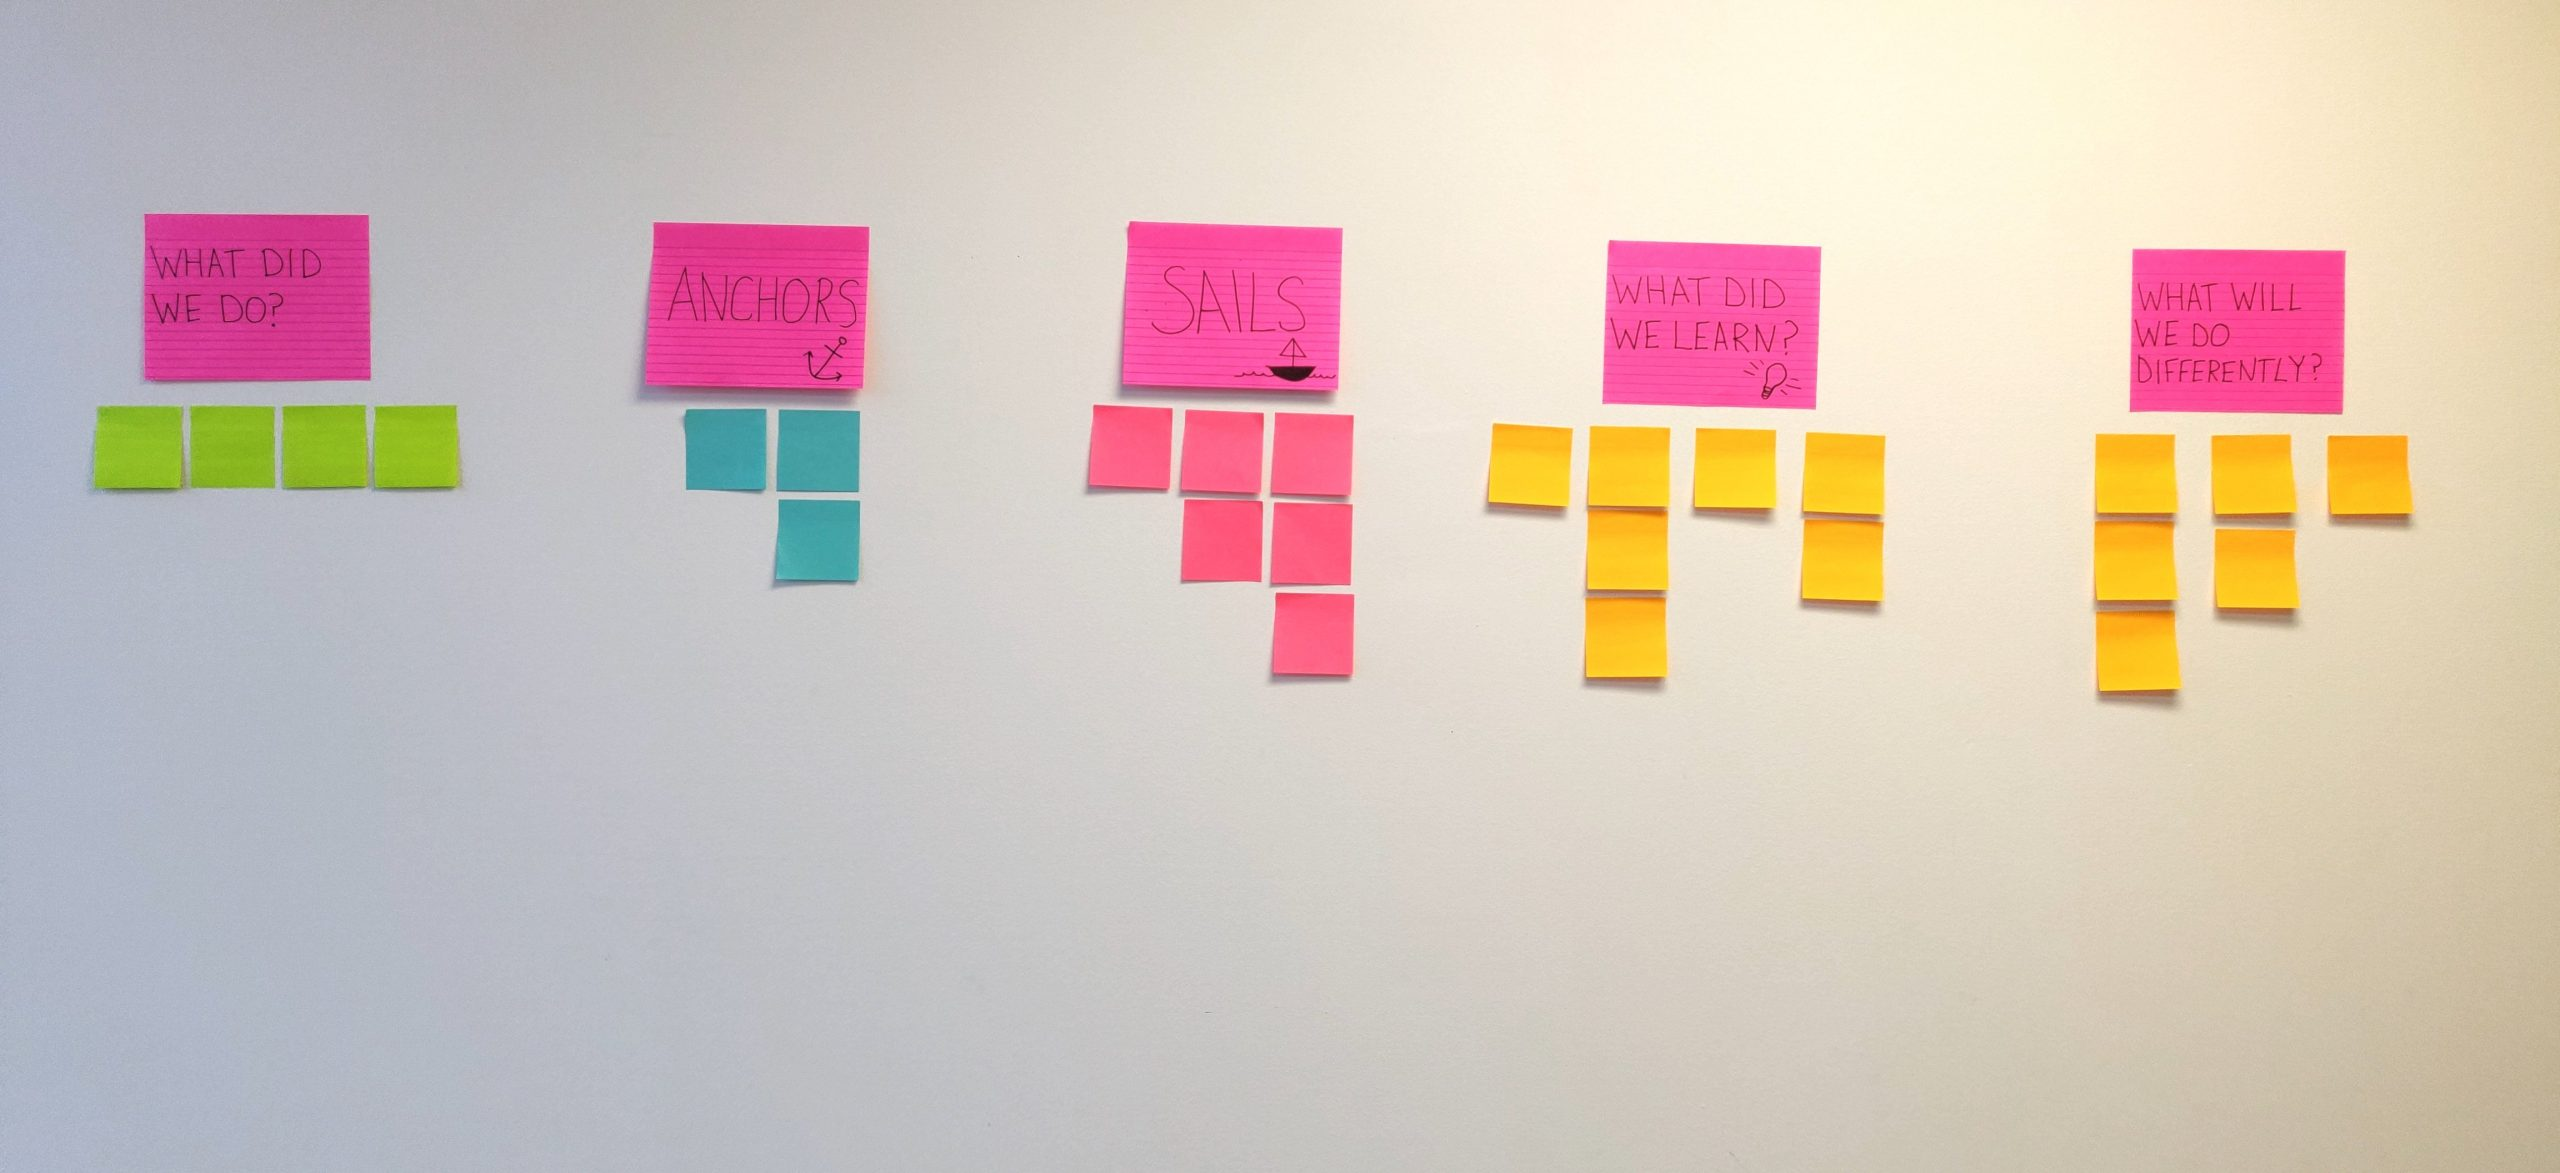 Post-its arranged sequentially on a wall with the written prompts for Sails and Anchors